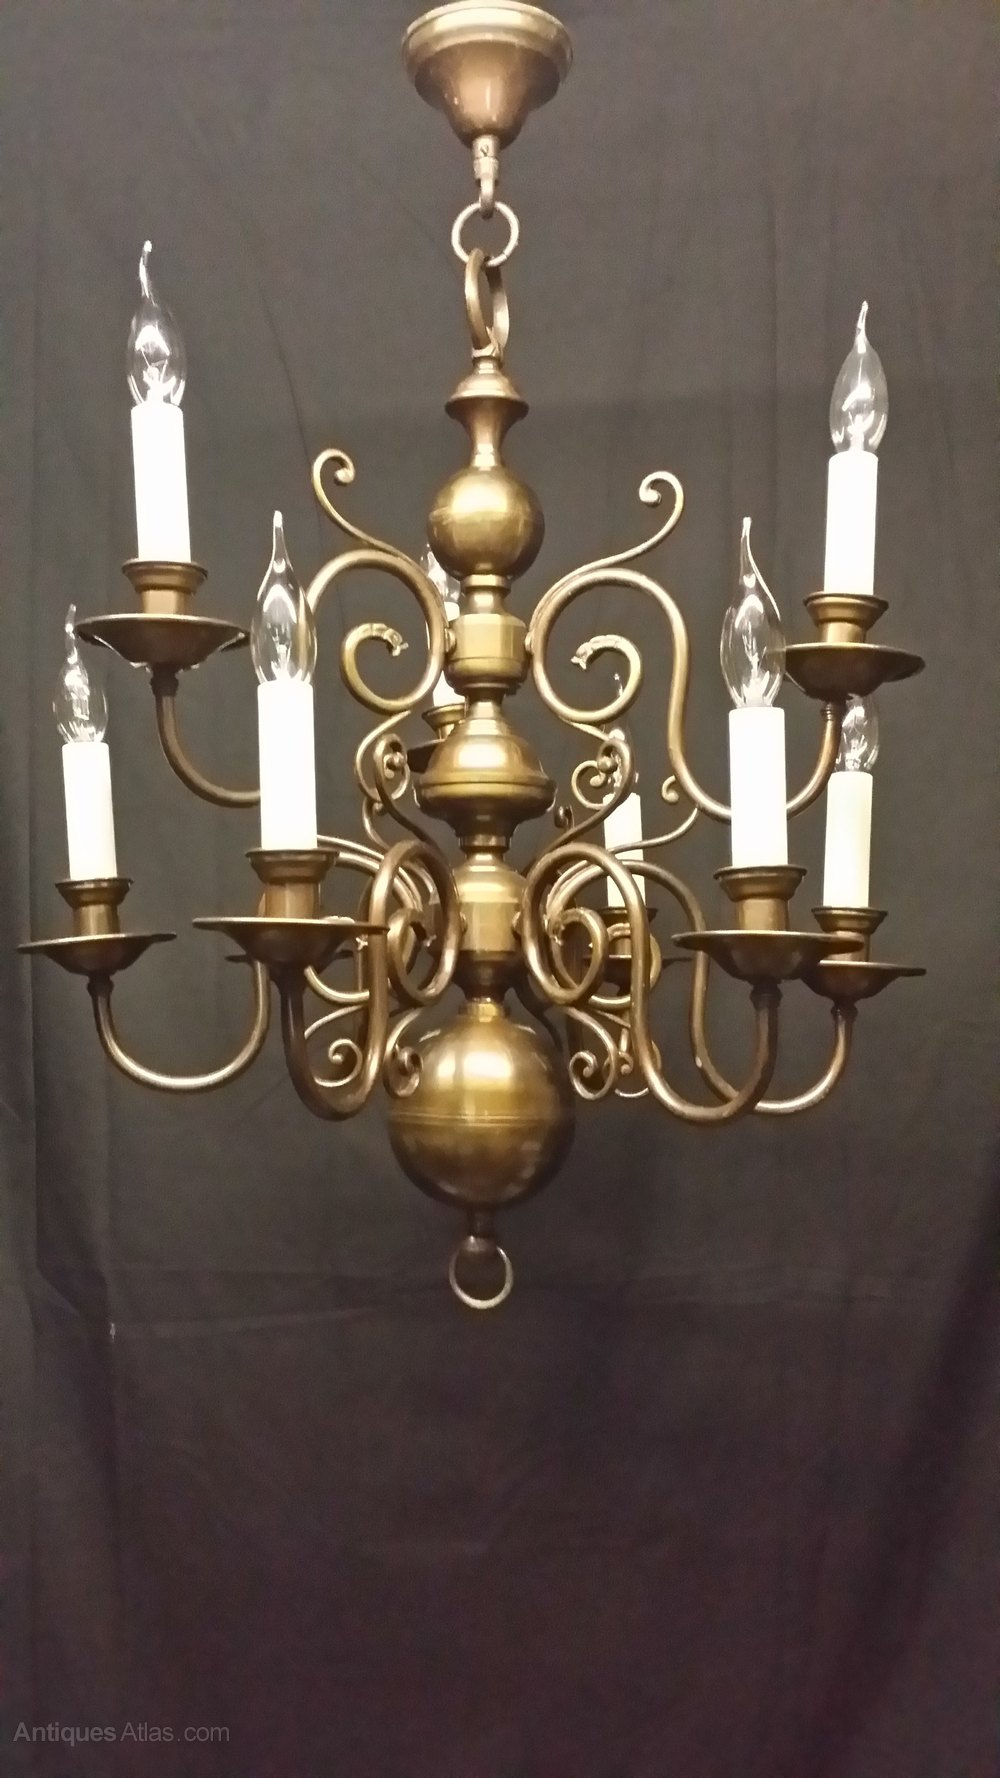 Two tier chandeliers flemish chandeliers this is a good quality 9 light two tier flemish chandelier this chandelier is brass but over the years has built up a good patination and colour giving it arubaitofo Gallery